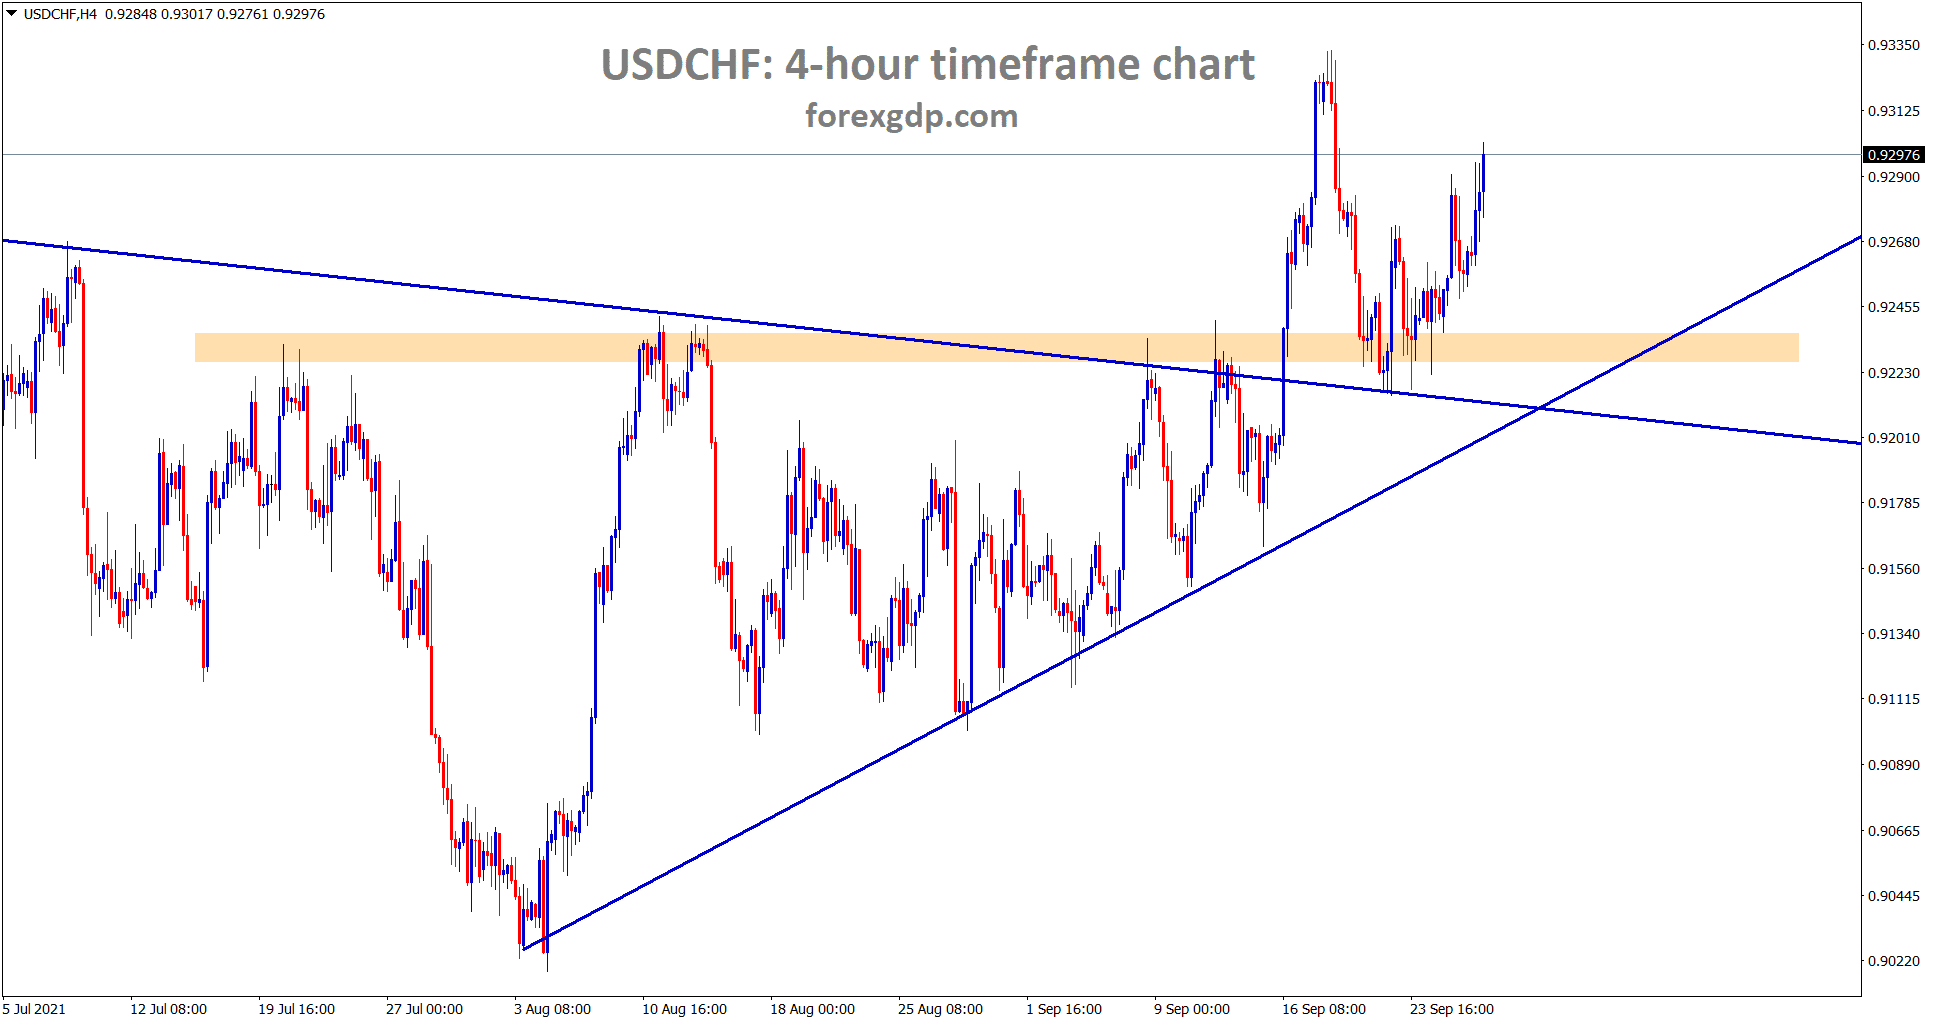 USDCHF is rebounding from the retest zone of the symmetrical triangle